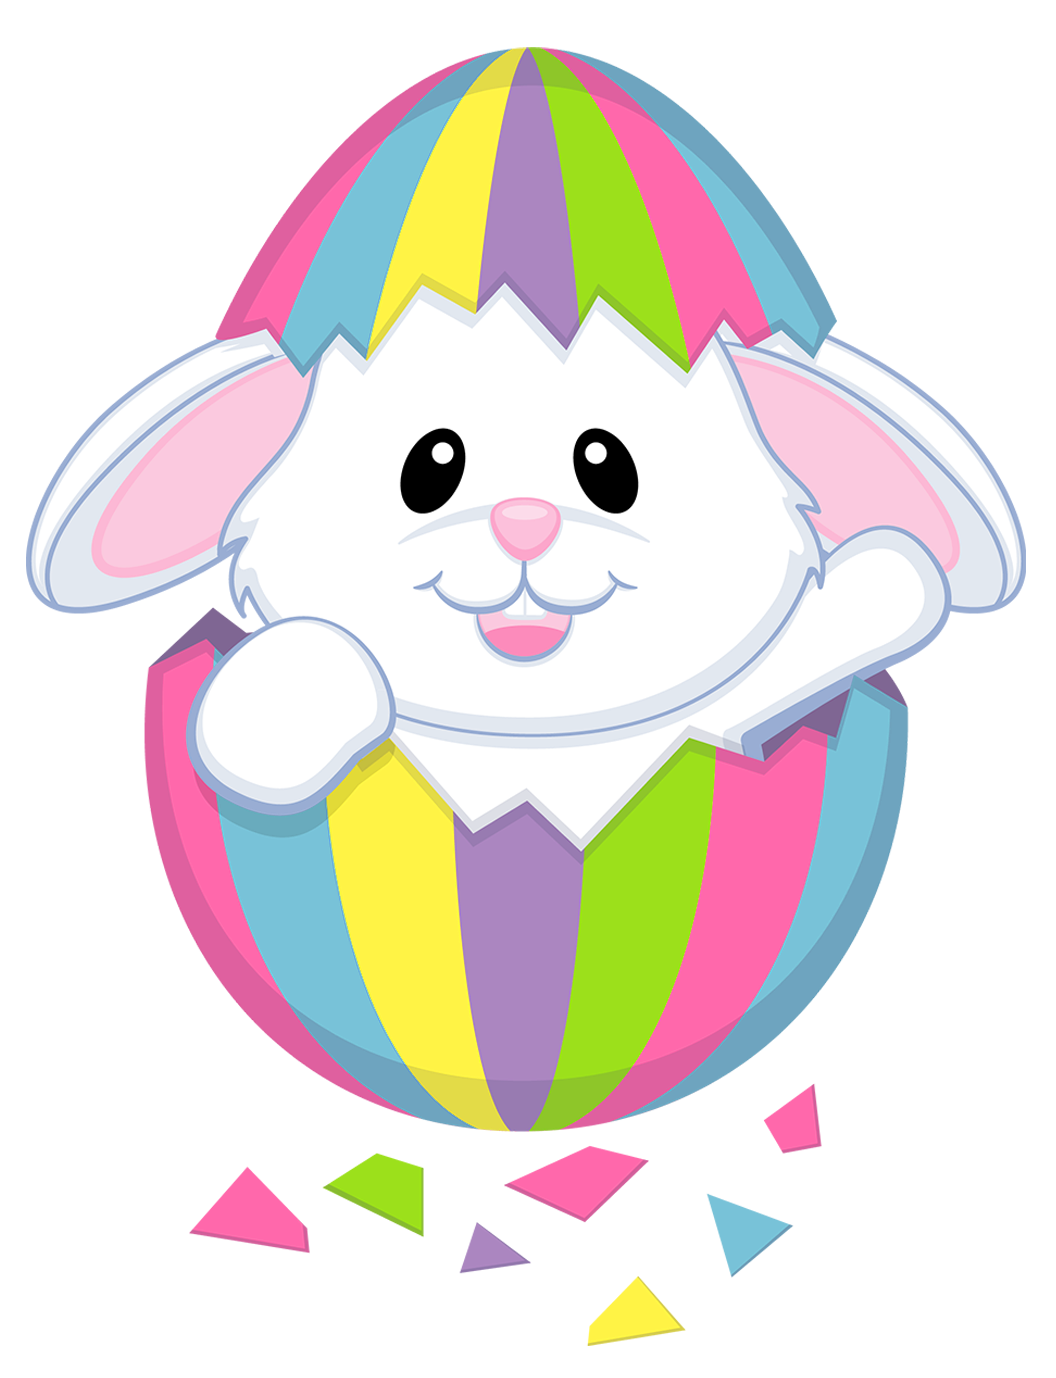 easter bunny clipart best easter eggs pinterest easter bunny rh pinterest com clipart easter service clipart easter eggs